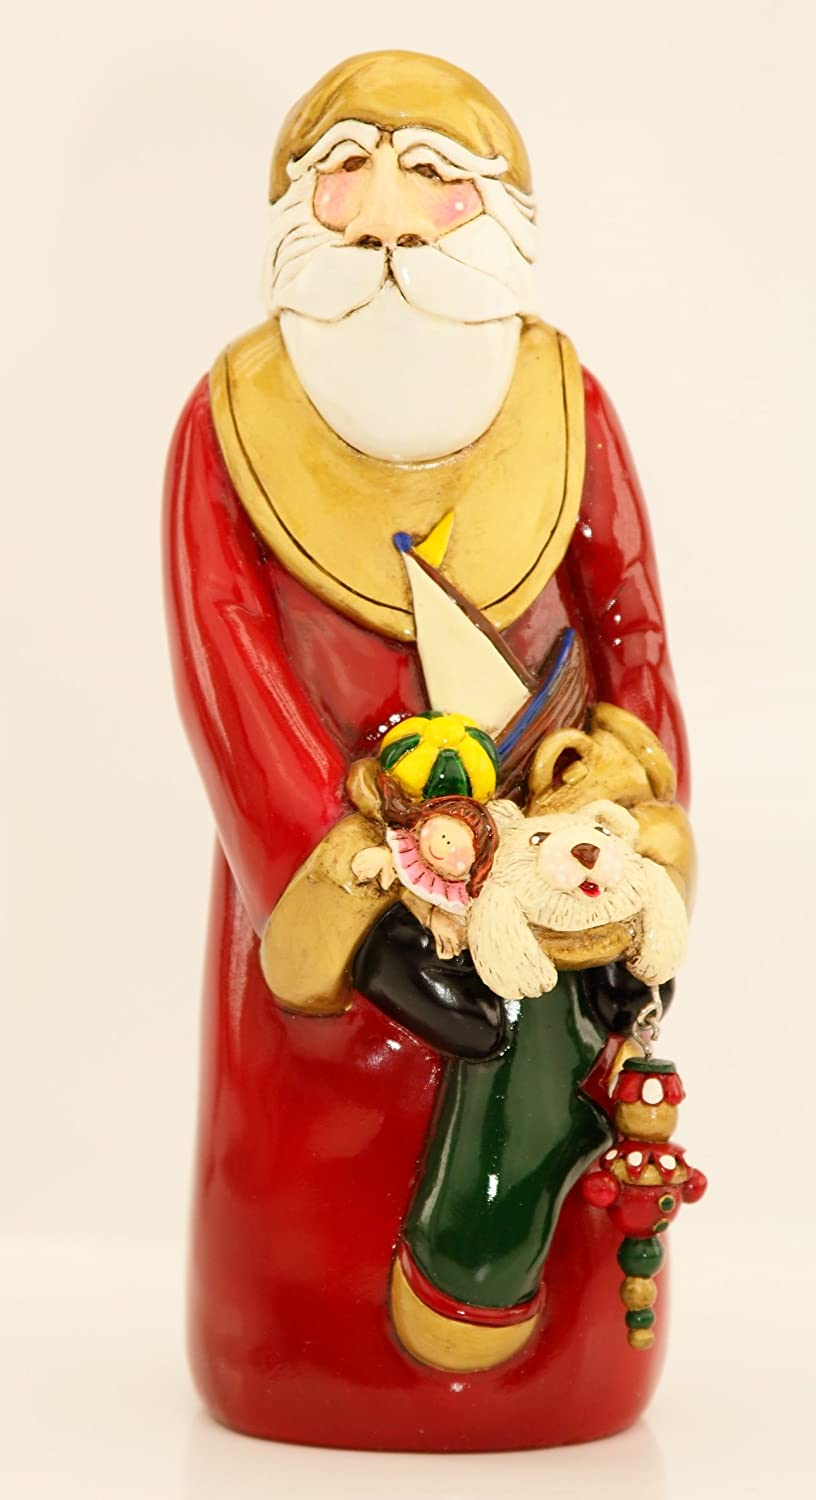 Amazon.com: Blue Sky Clayworks Handcrafted Christmas Ye Old Santa ...